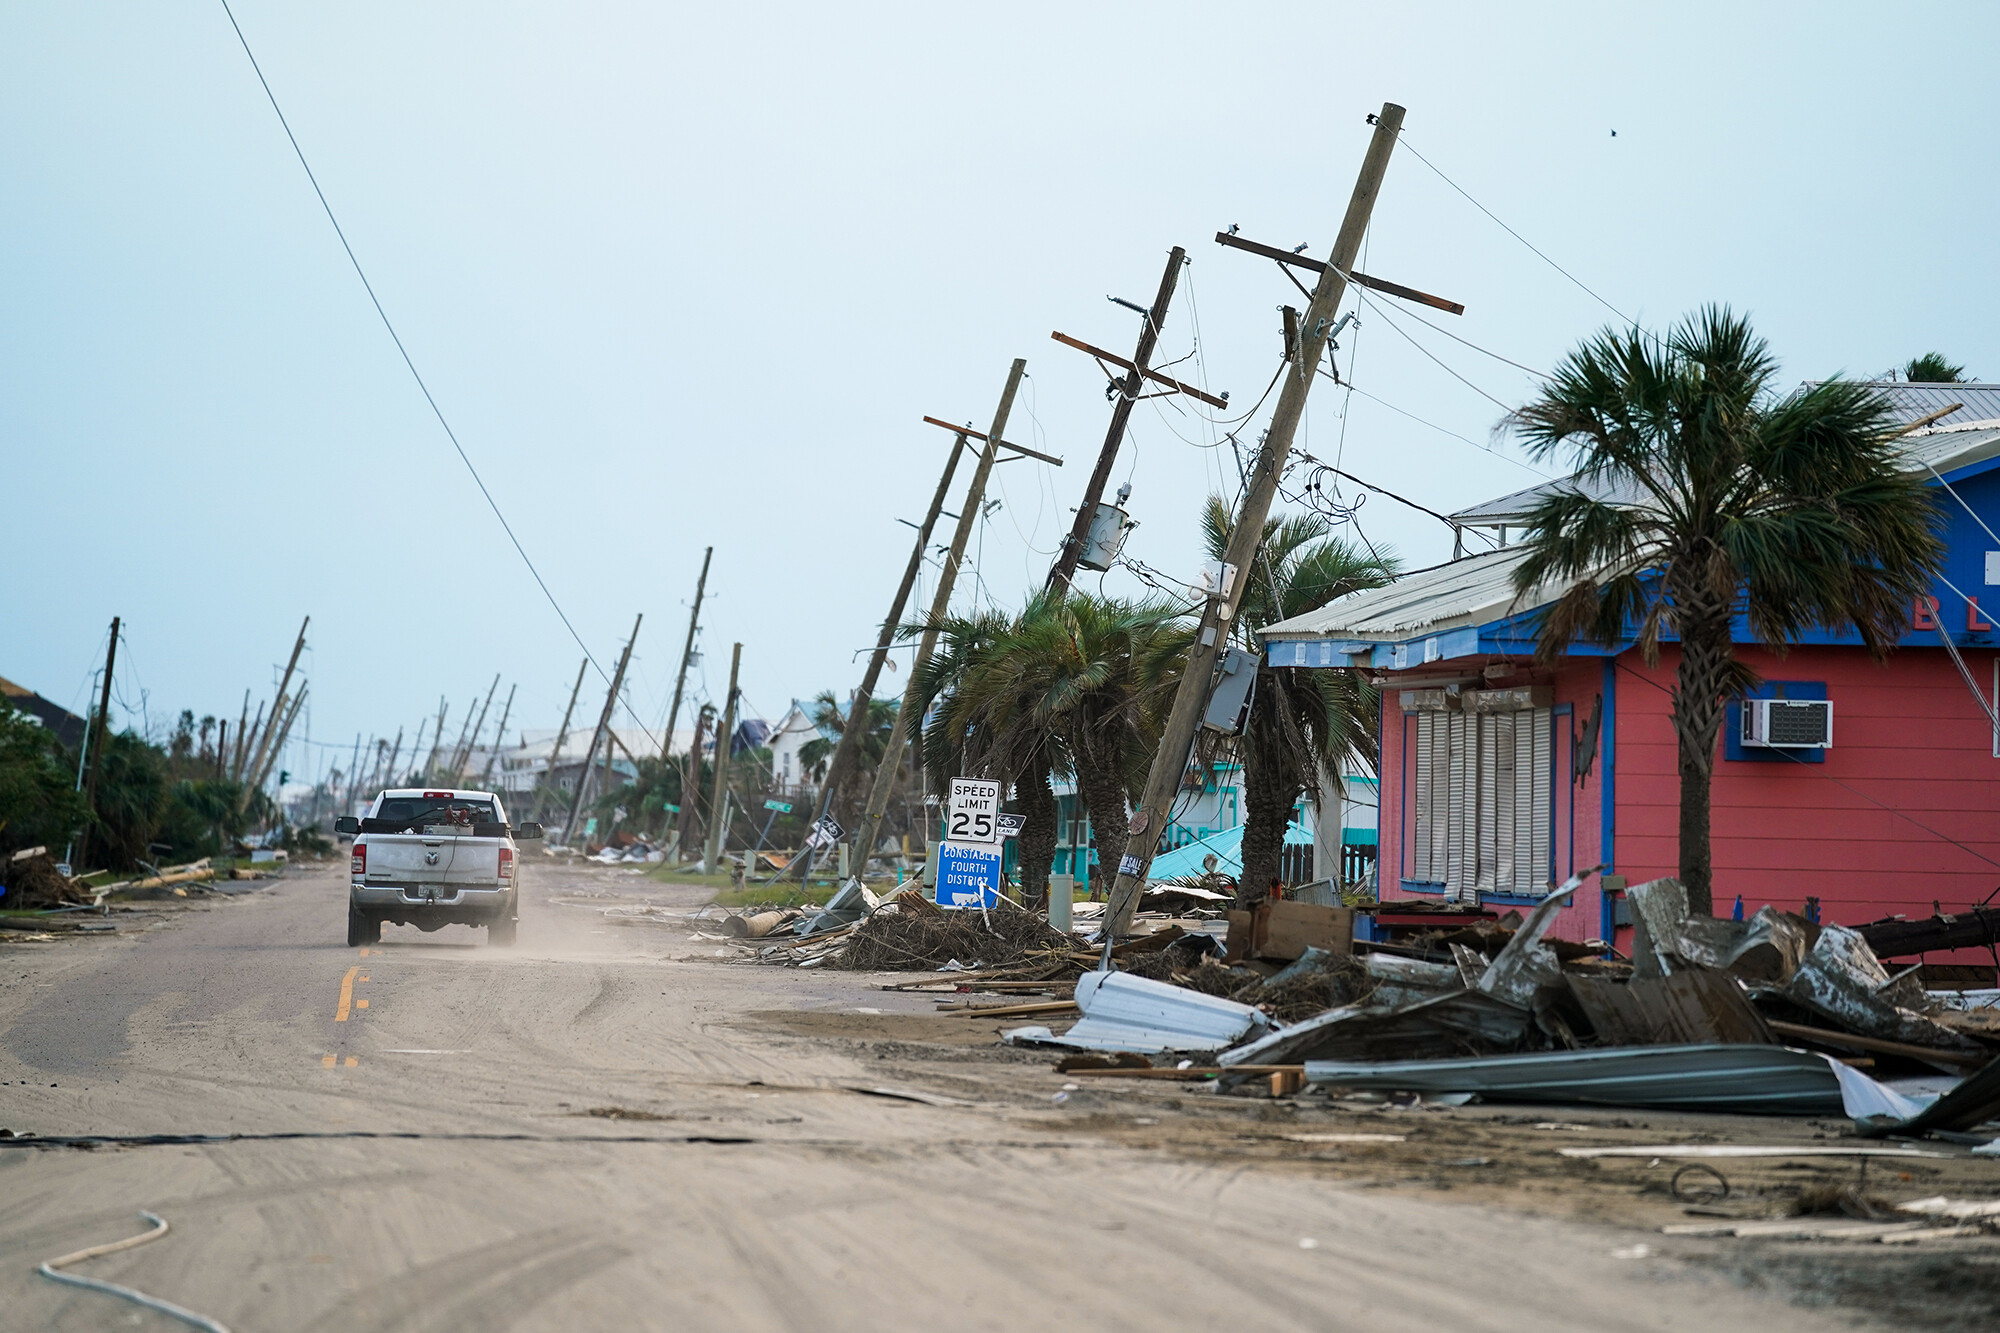 <i>Sean Rayford/Getty Images</i><br/>A motorist drives down a road in the wake of Hurricane Ida on September 4